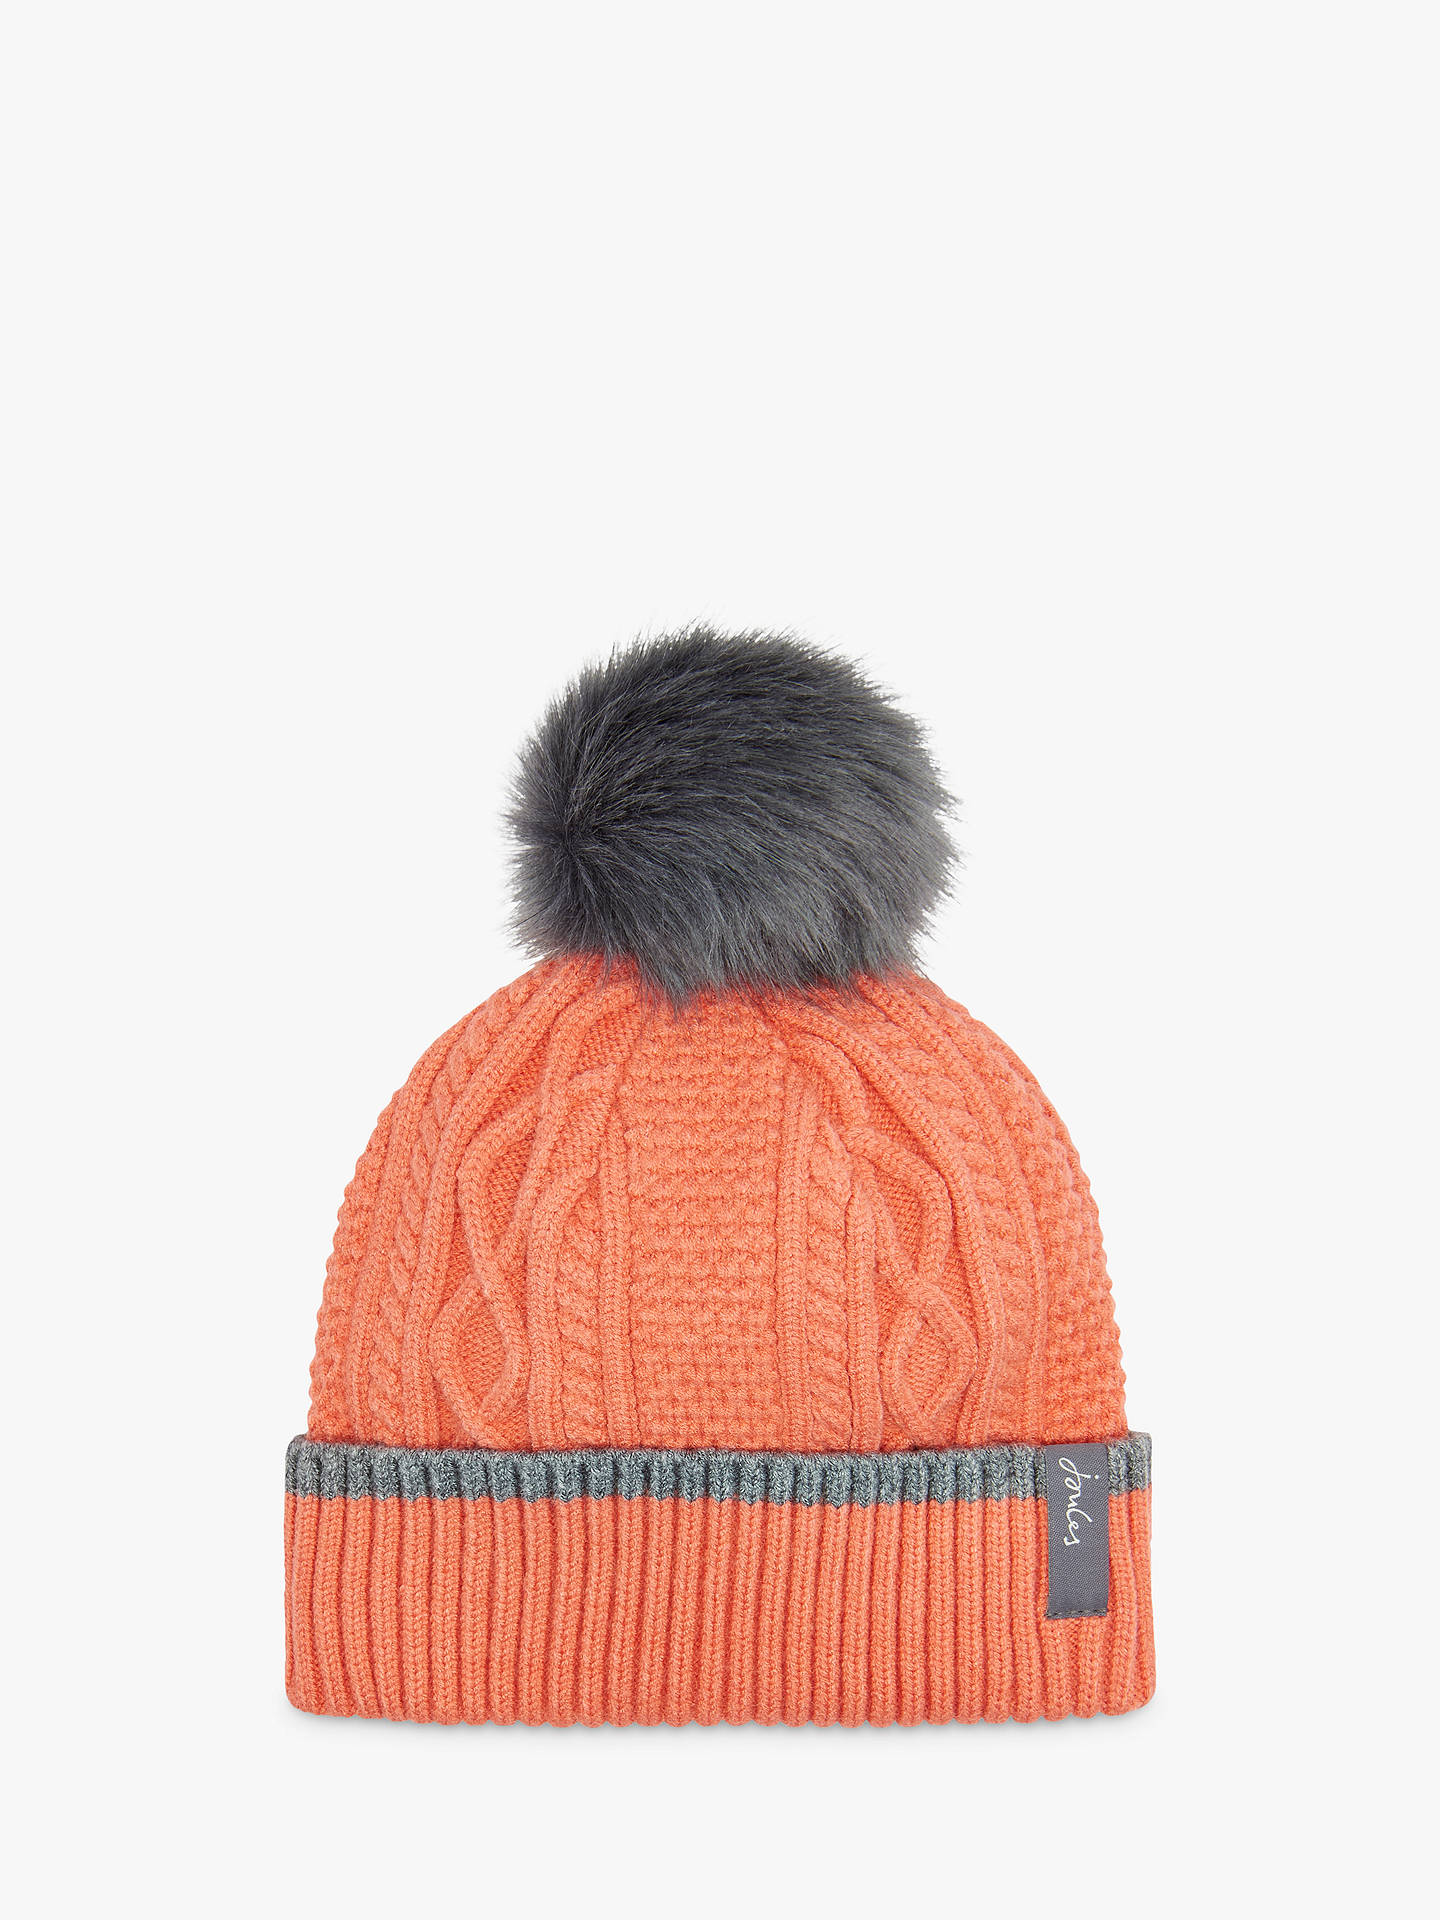 48ff6d2e855 Joules Anya Bobble Cable Knit Pom Pom Beanie Hat at John Lewis ...